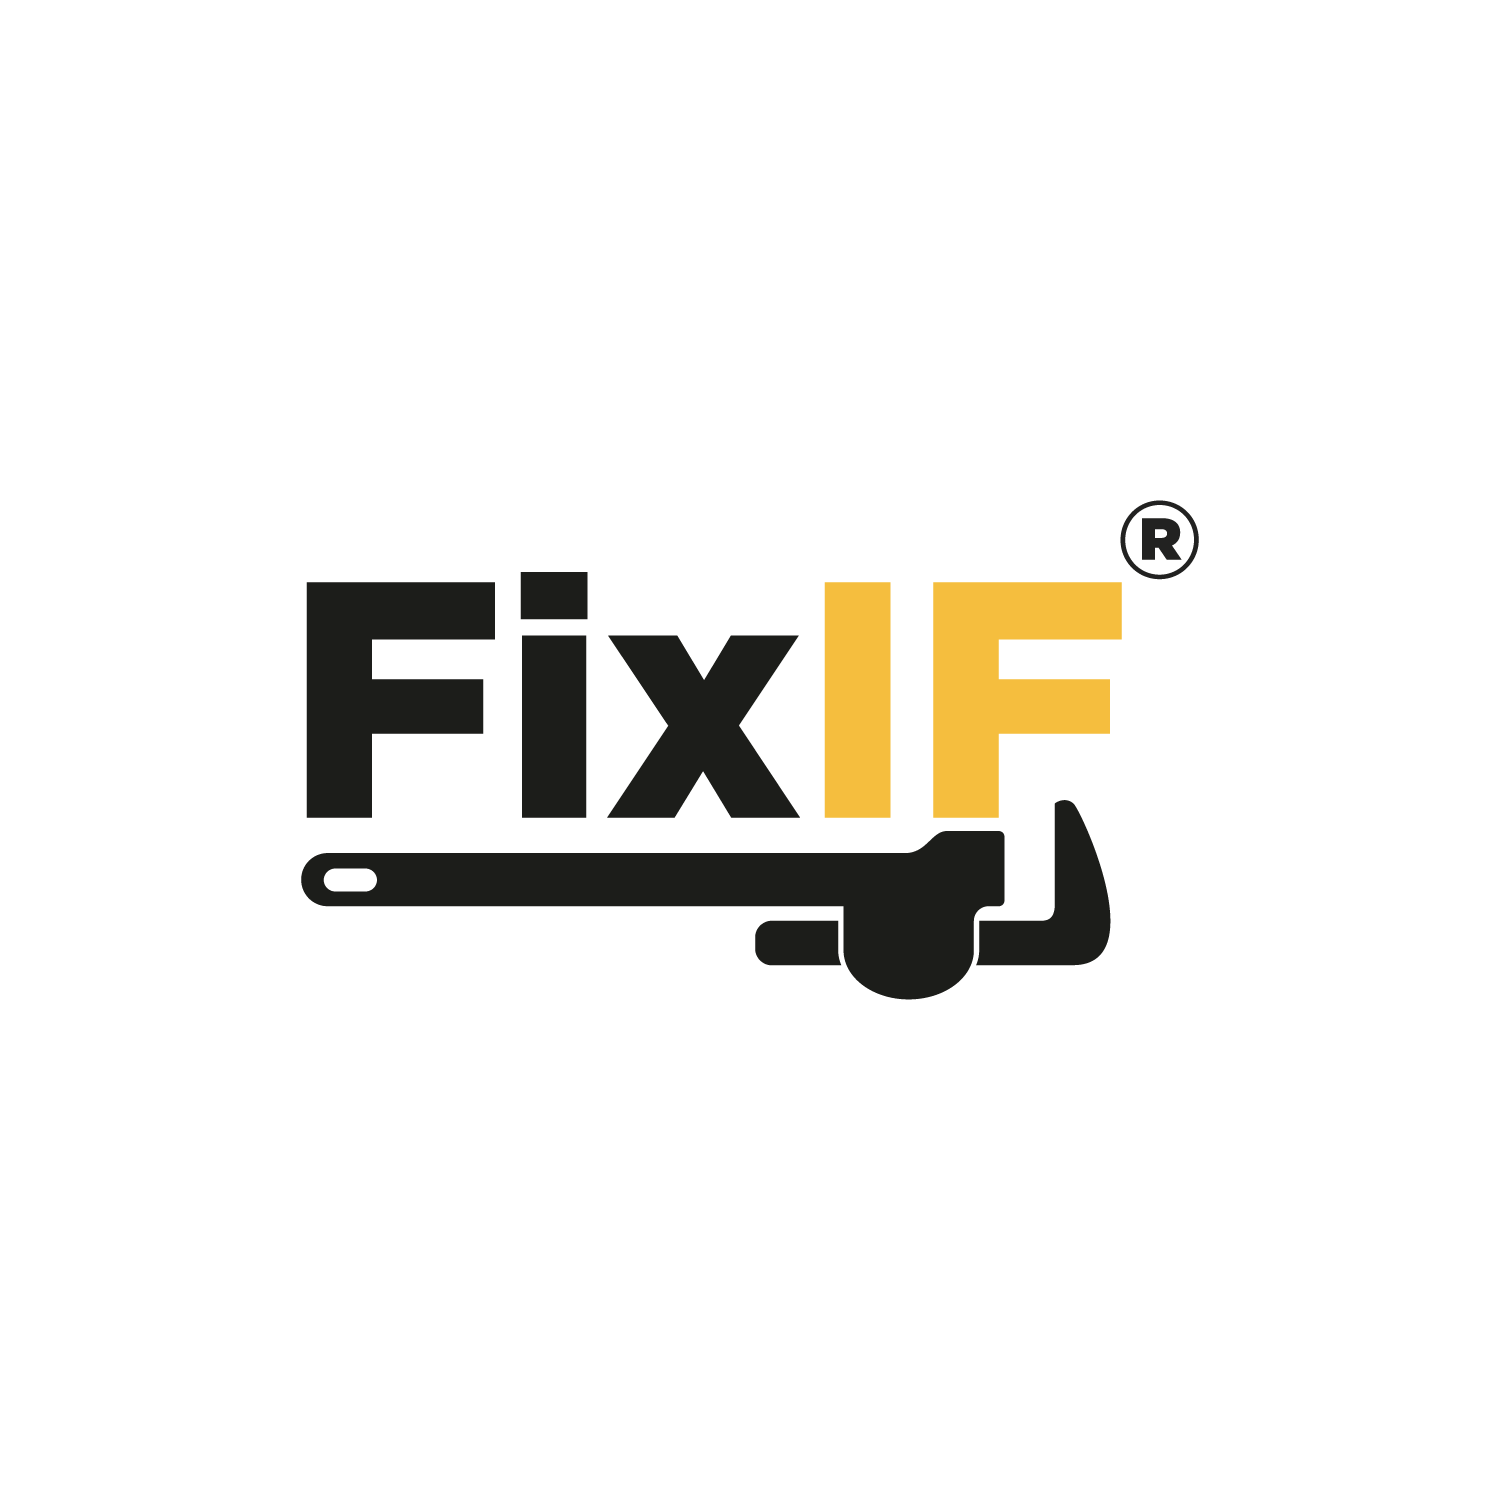 FixIF Emergency Plumber in Pondersbridge